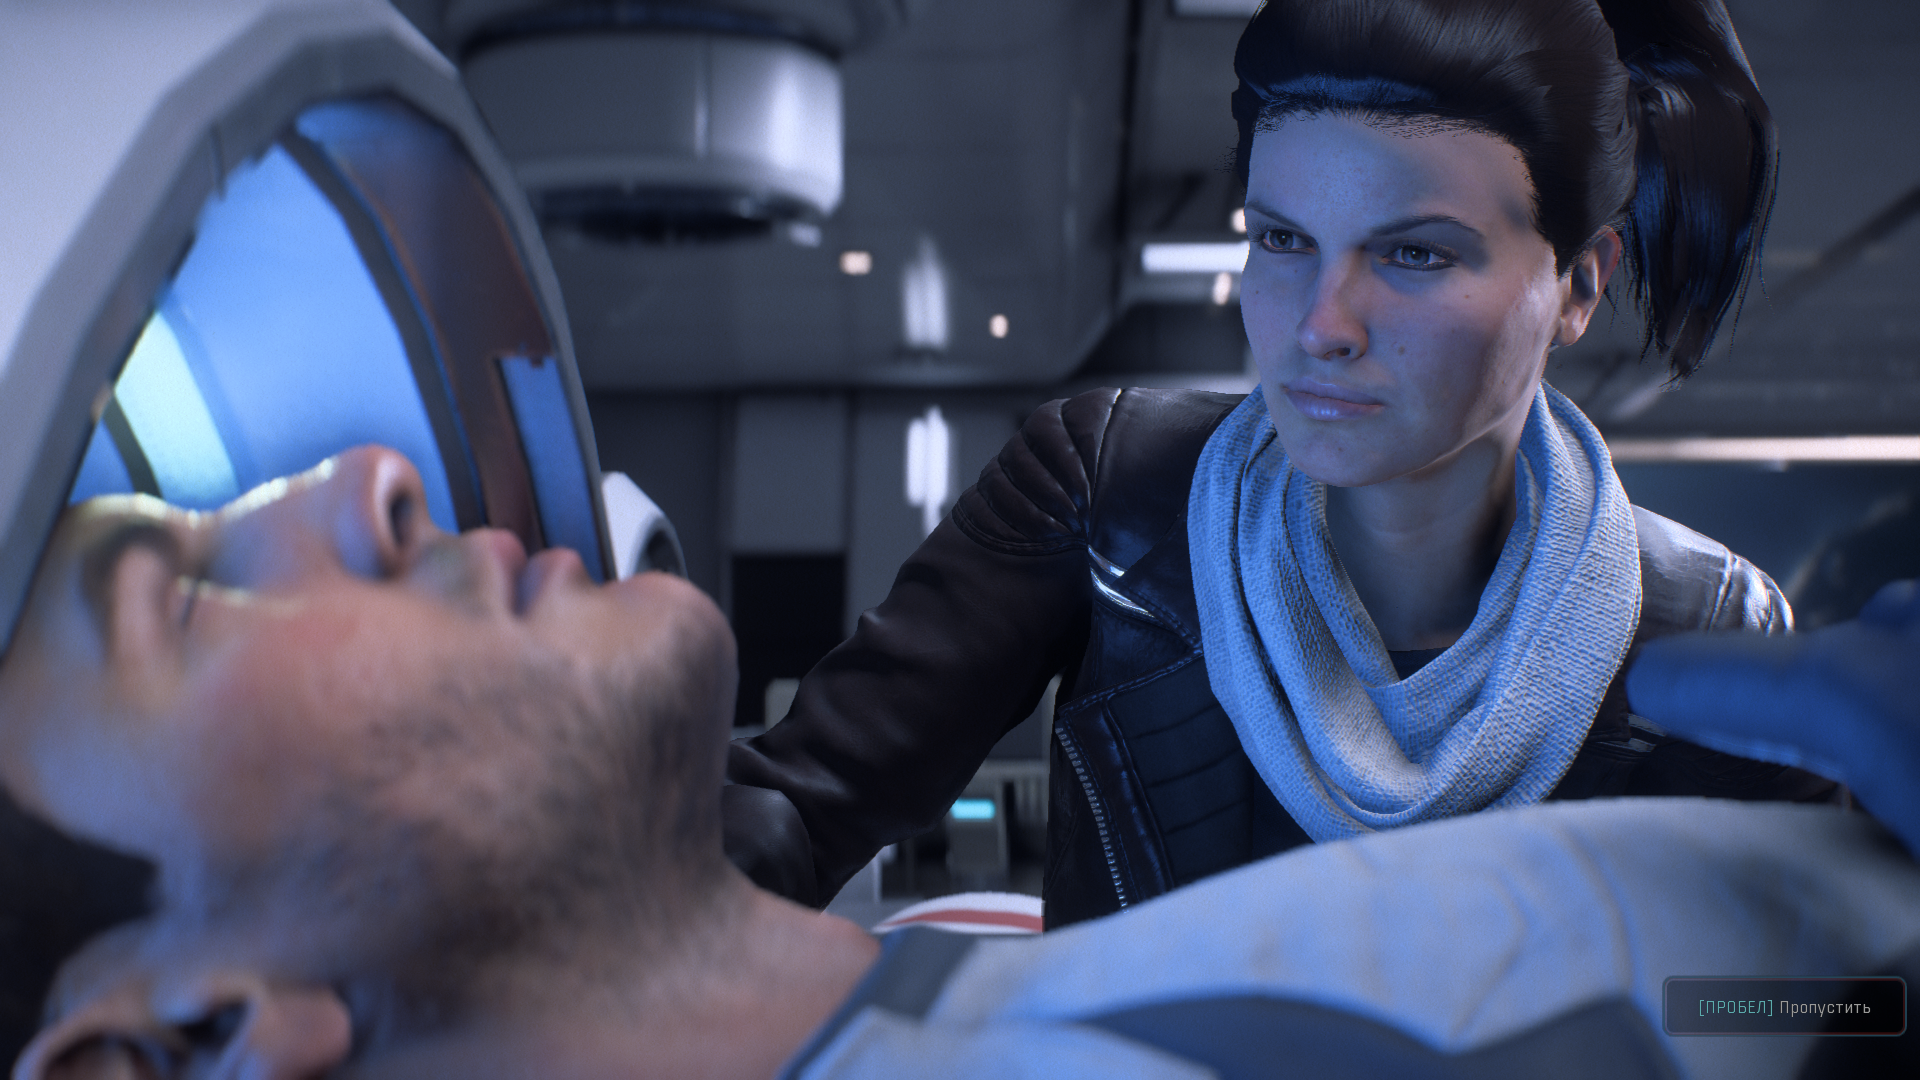 2018-02-11_191643.png - Mass Effect: Andromeda